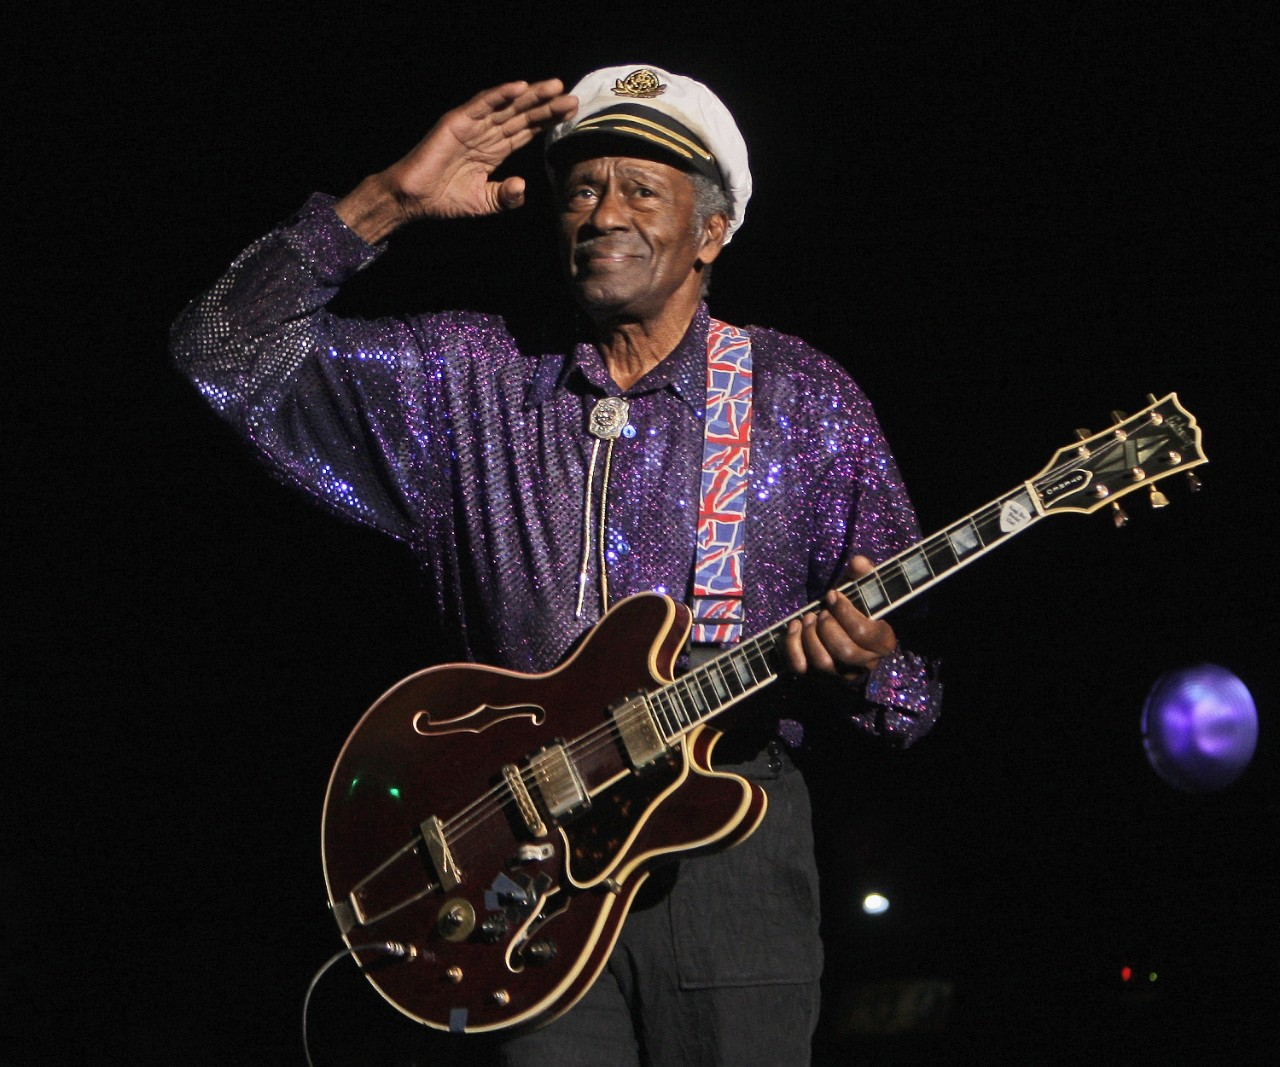 rock n roll legend chuck berry has died at 90. Black Bedroom Furniture Sets. Home Design Ideas